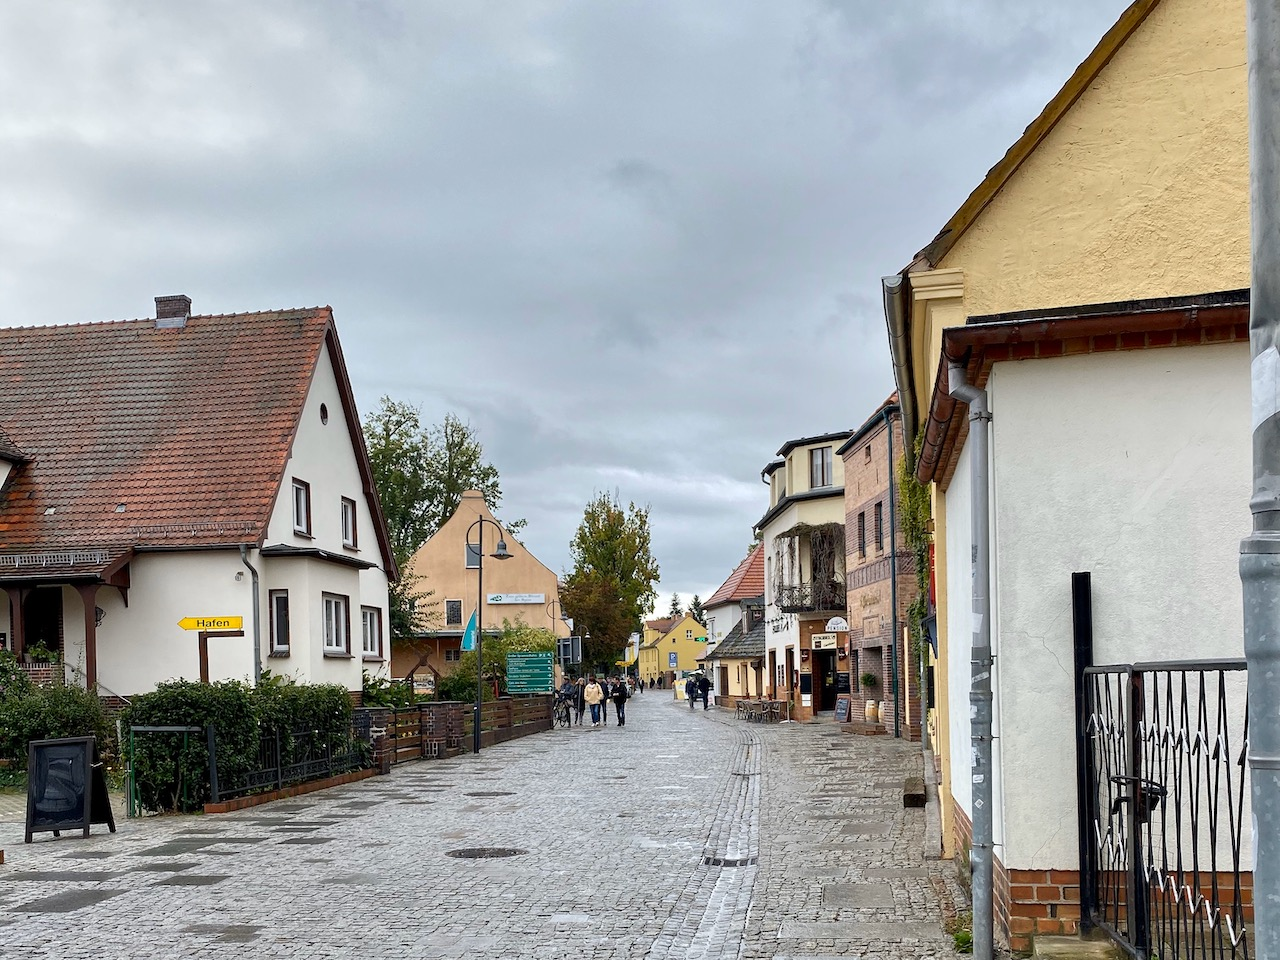 Day trip to Lübbenau, Brandenburg